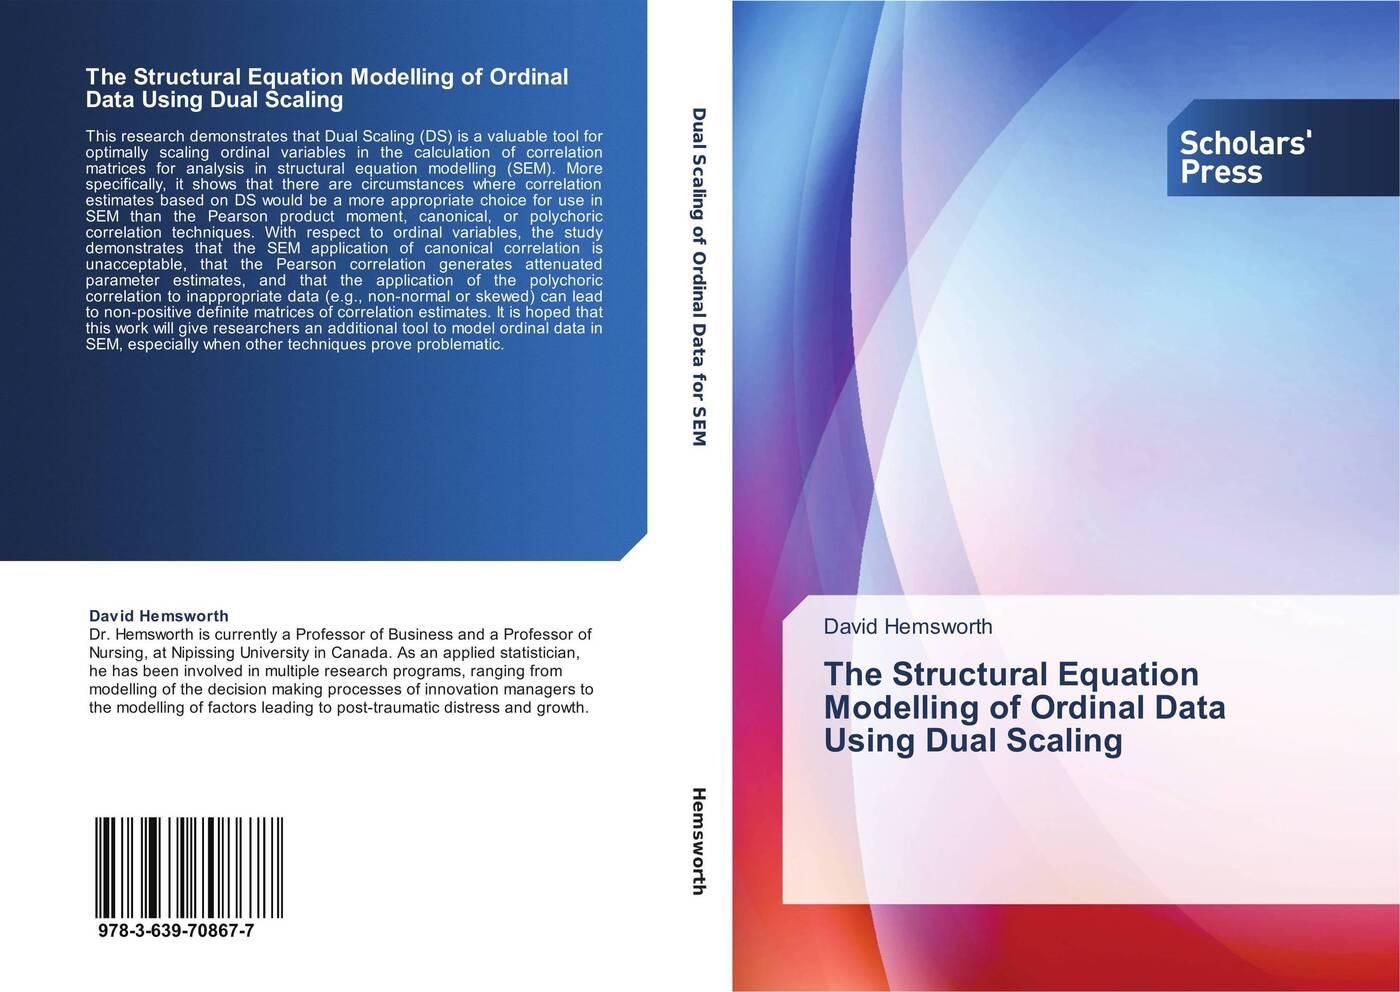 David Hemsworth The Structural Equation Modelling of Ordinal Data Using Dual Scaling feng fu advanced modelling techniques in structural design